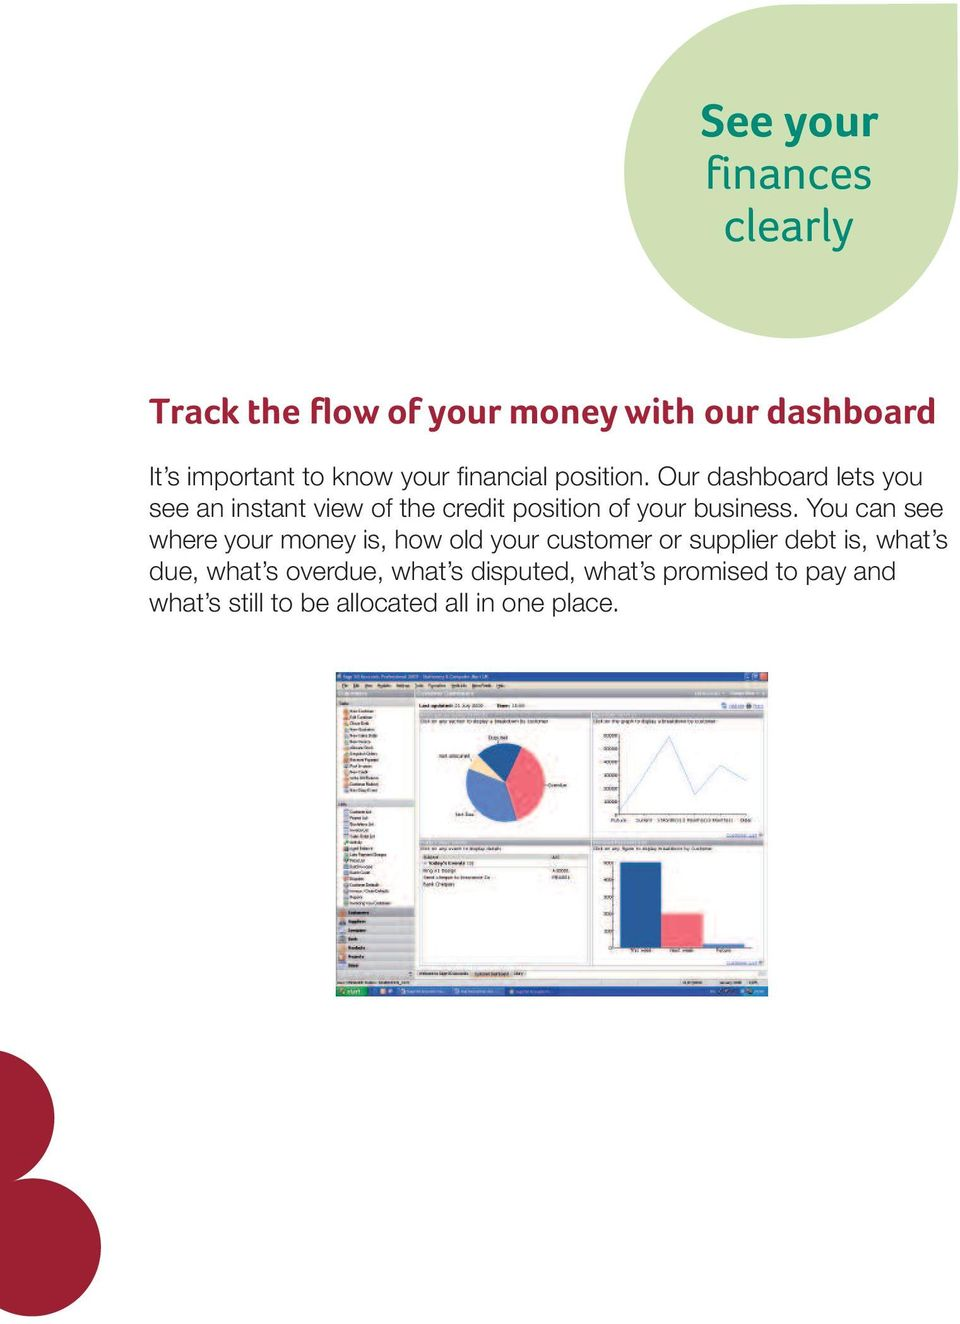 Our dashboard lets you see an instant view of the credit position of your business.